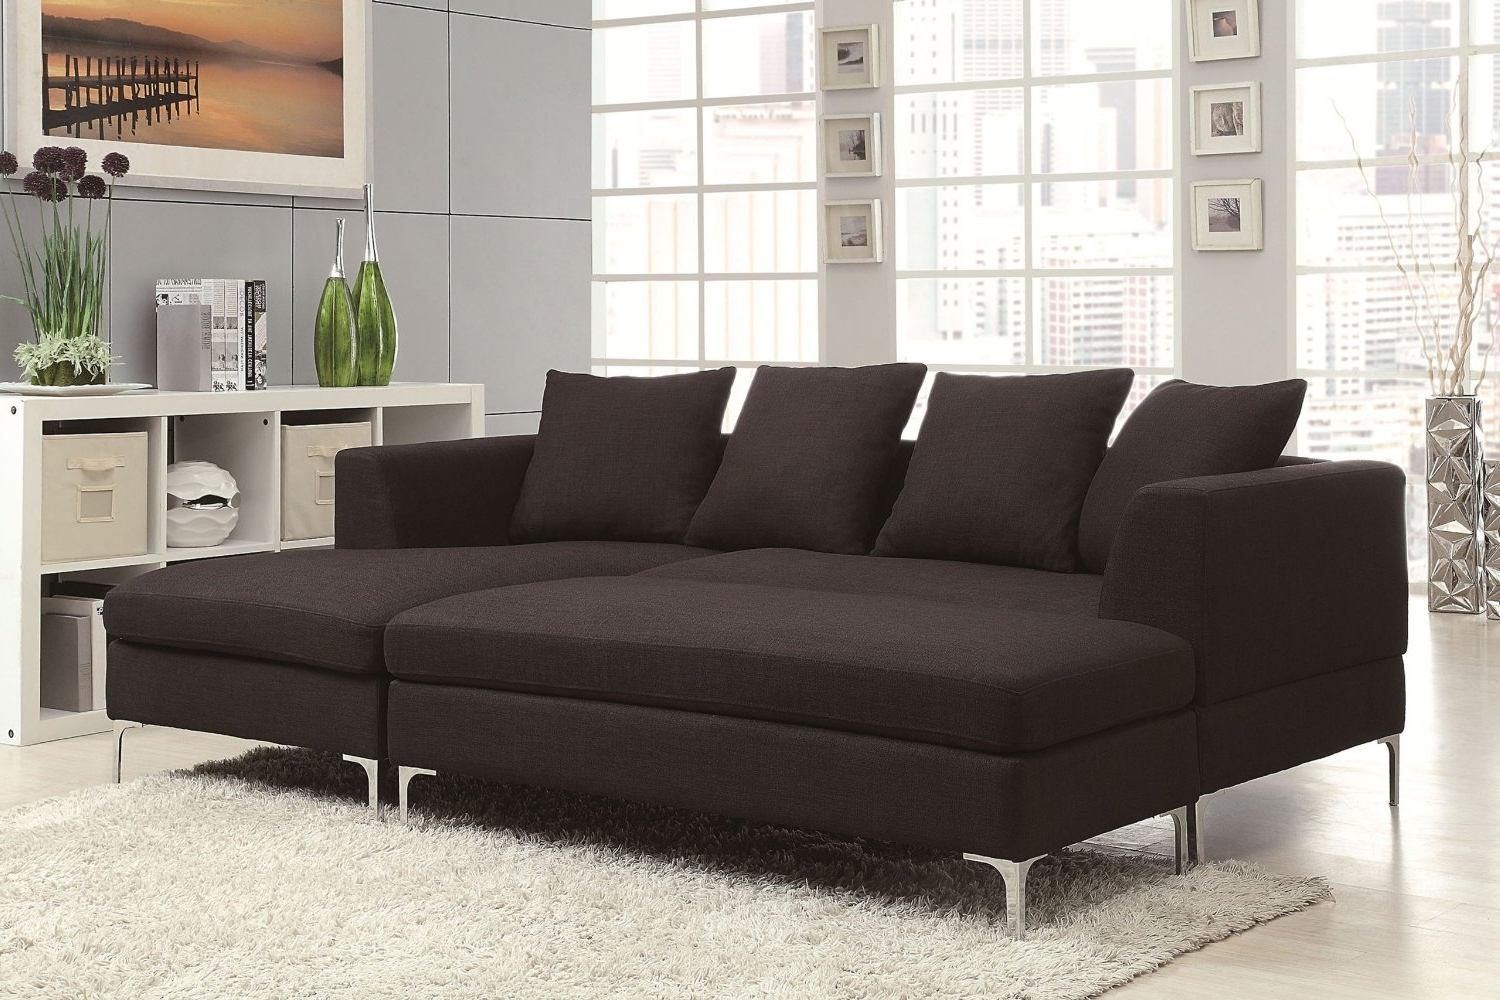 Sectional Chaise Sofa – Home And Textiles Inside Most Current Sectional Sofas With Chaise Lounge (View 4 of 15)